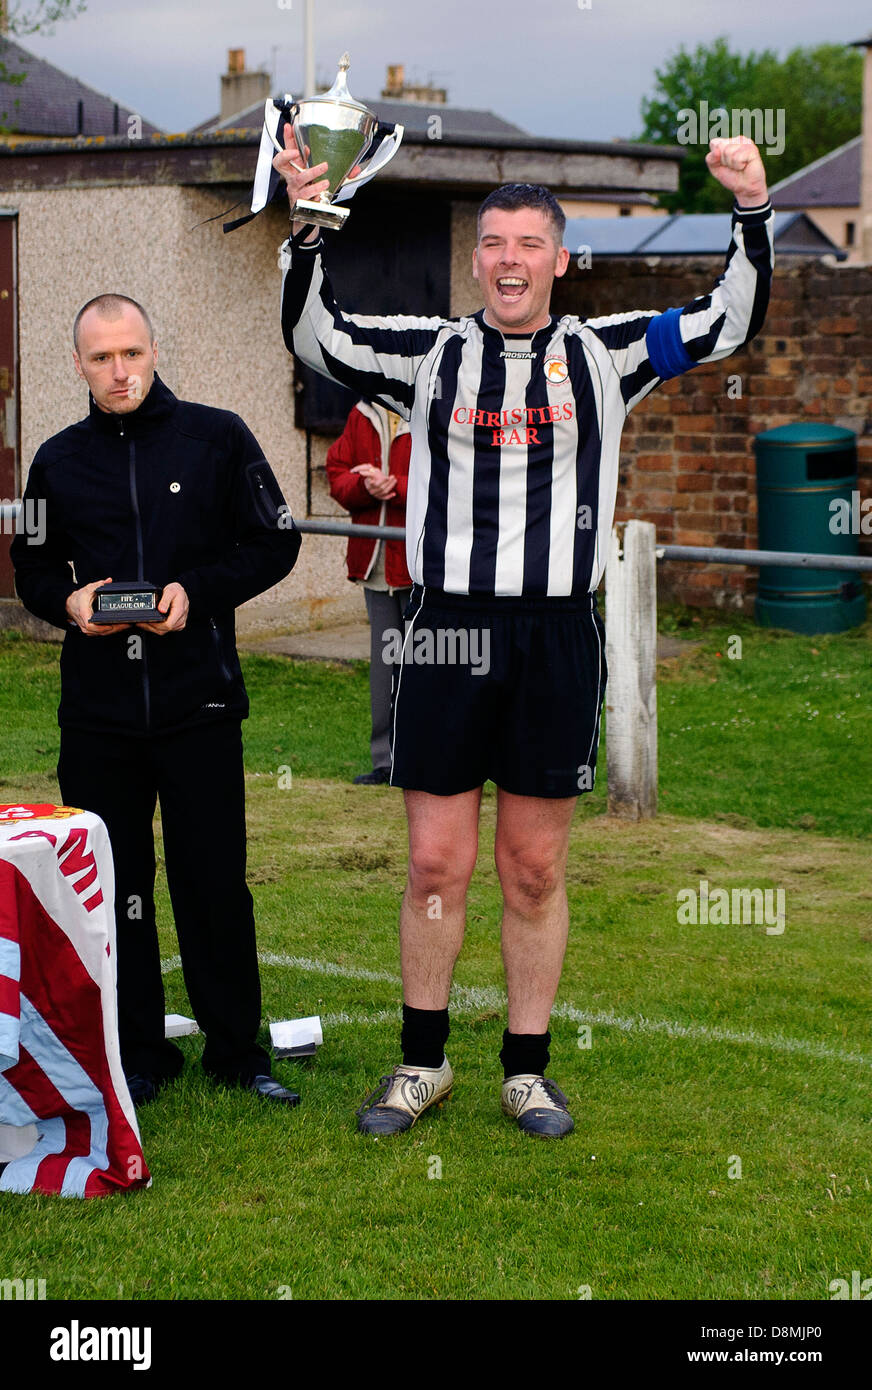 Jeanfield captain John Anderson lifts the ACA Cup - Stock Image